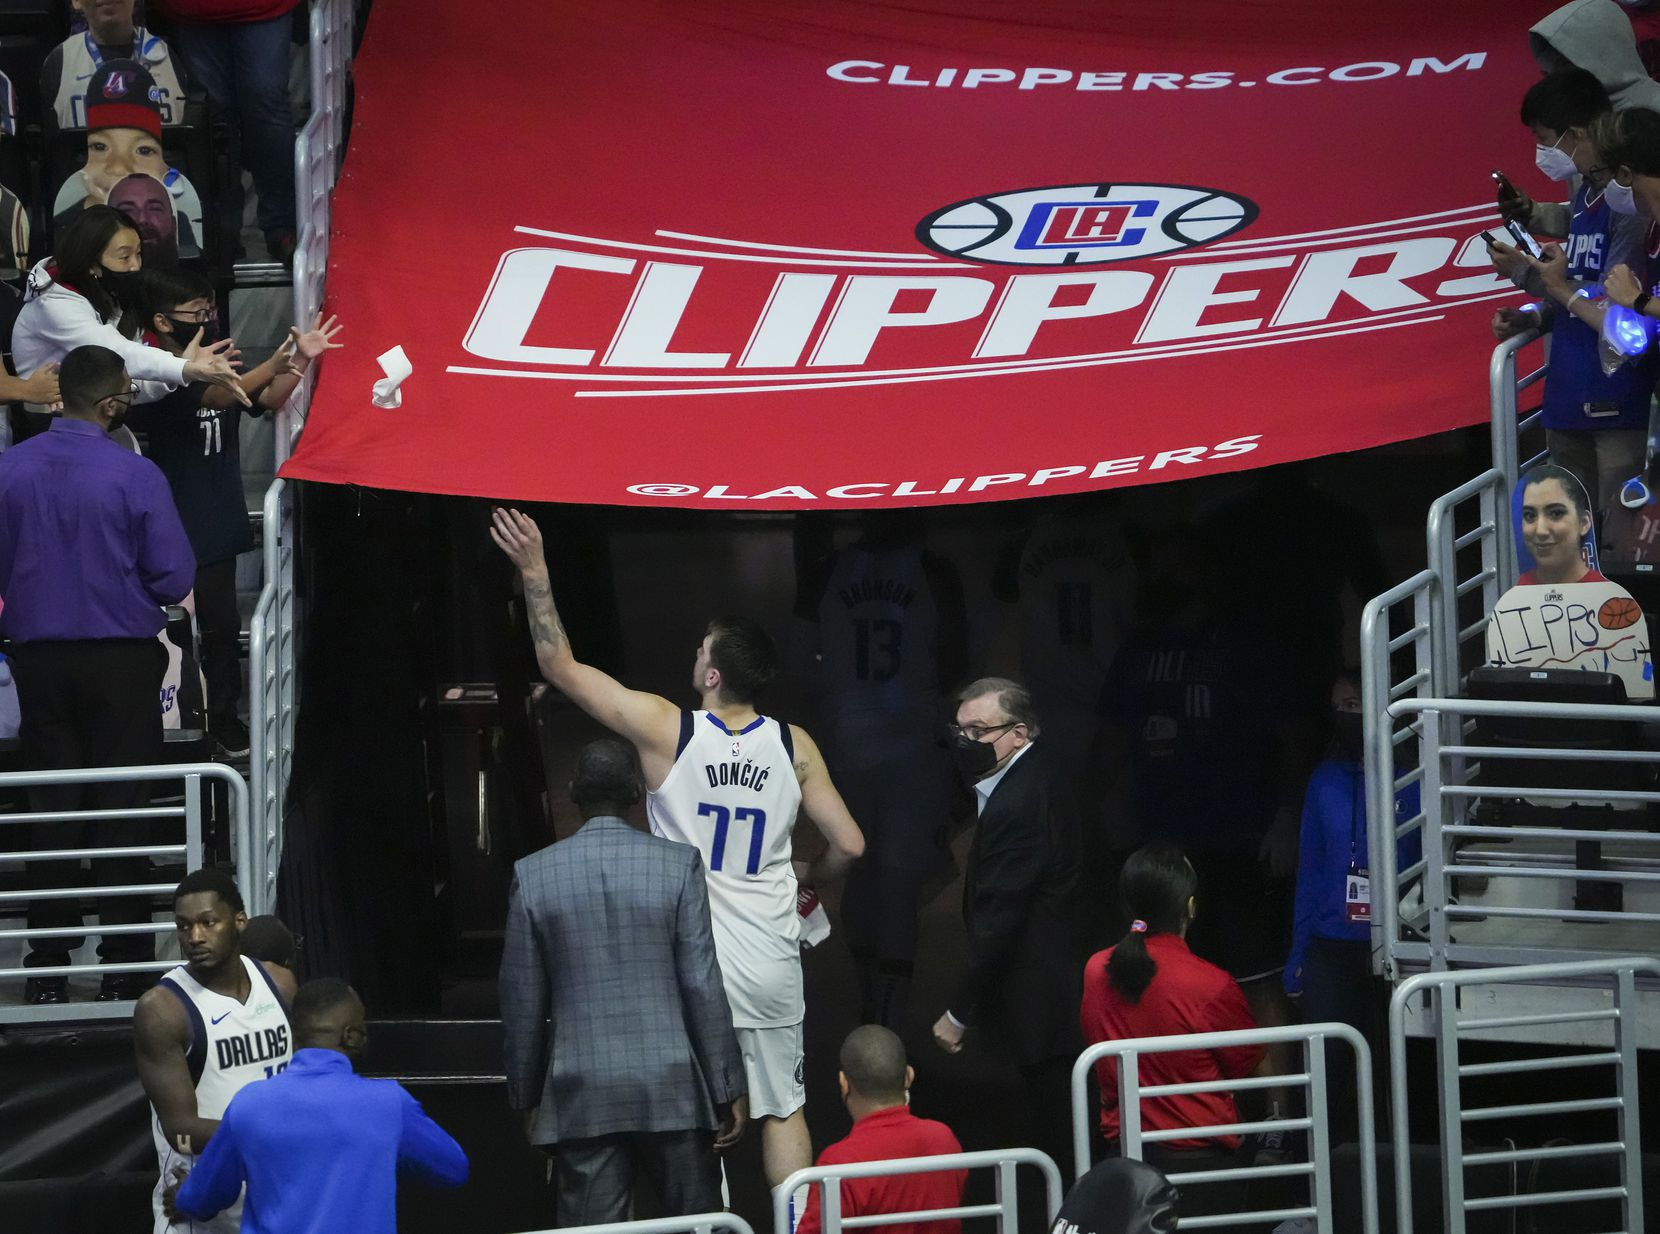 Dallas Mavericks guard Luka Doncic tosses a sweatband to the crowd as he leaves the court after a loss to the LA Clippers in Game 7 of an NBA playoff series at the Staples Center on Sunday, June 6, 2021, in Los Angeles.